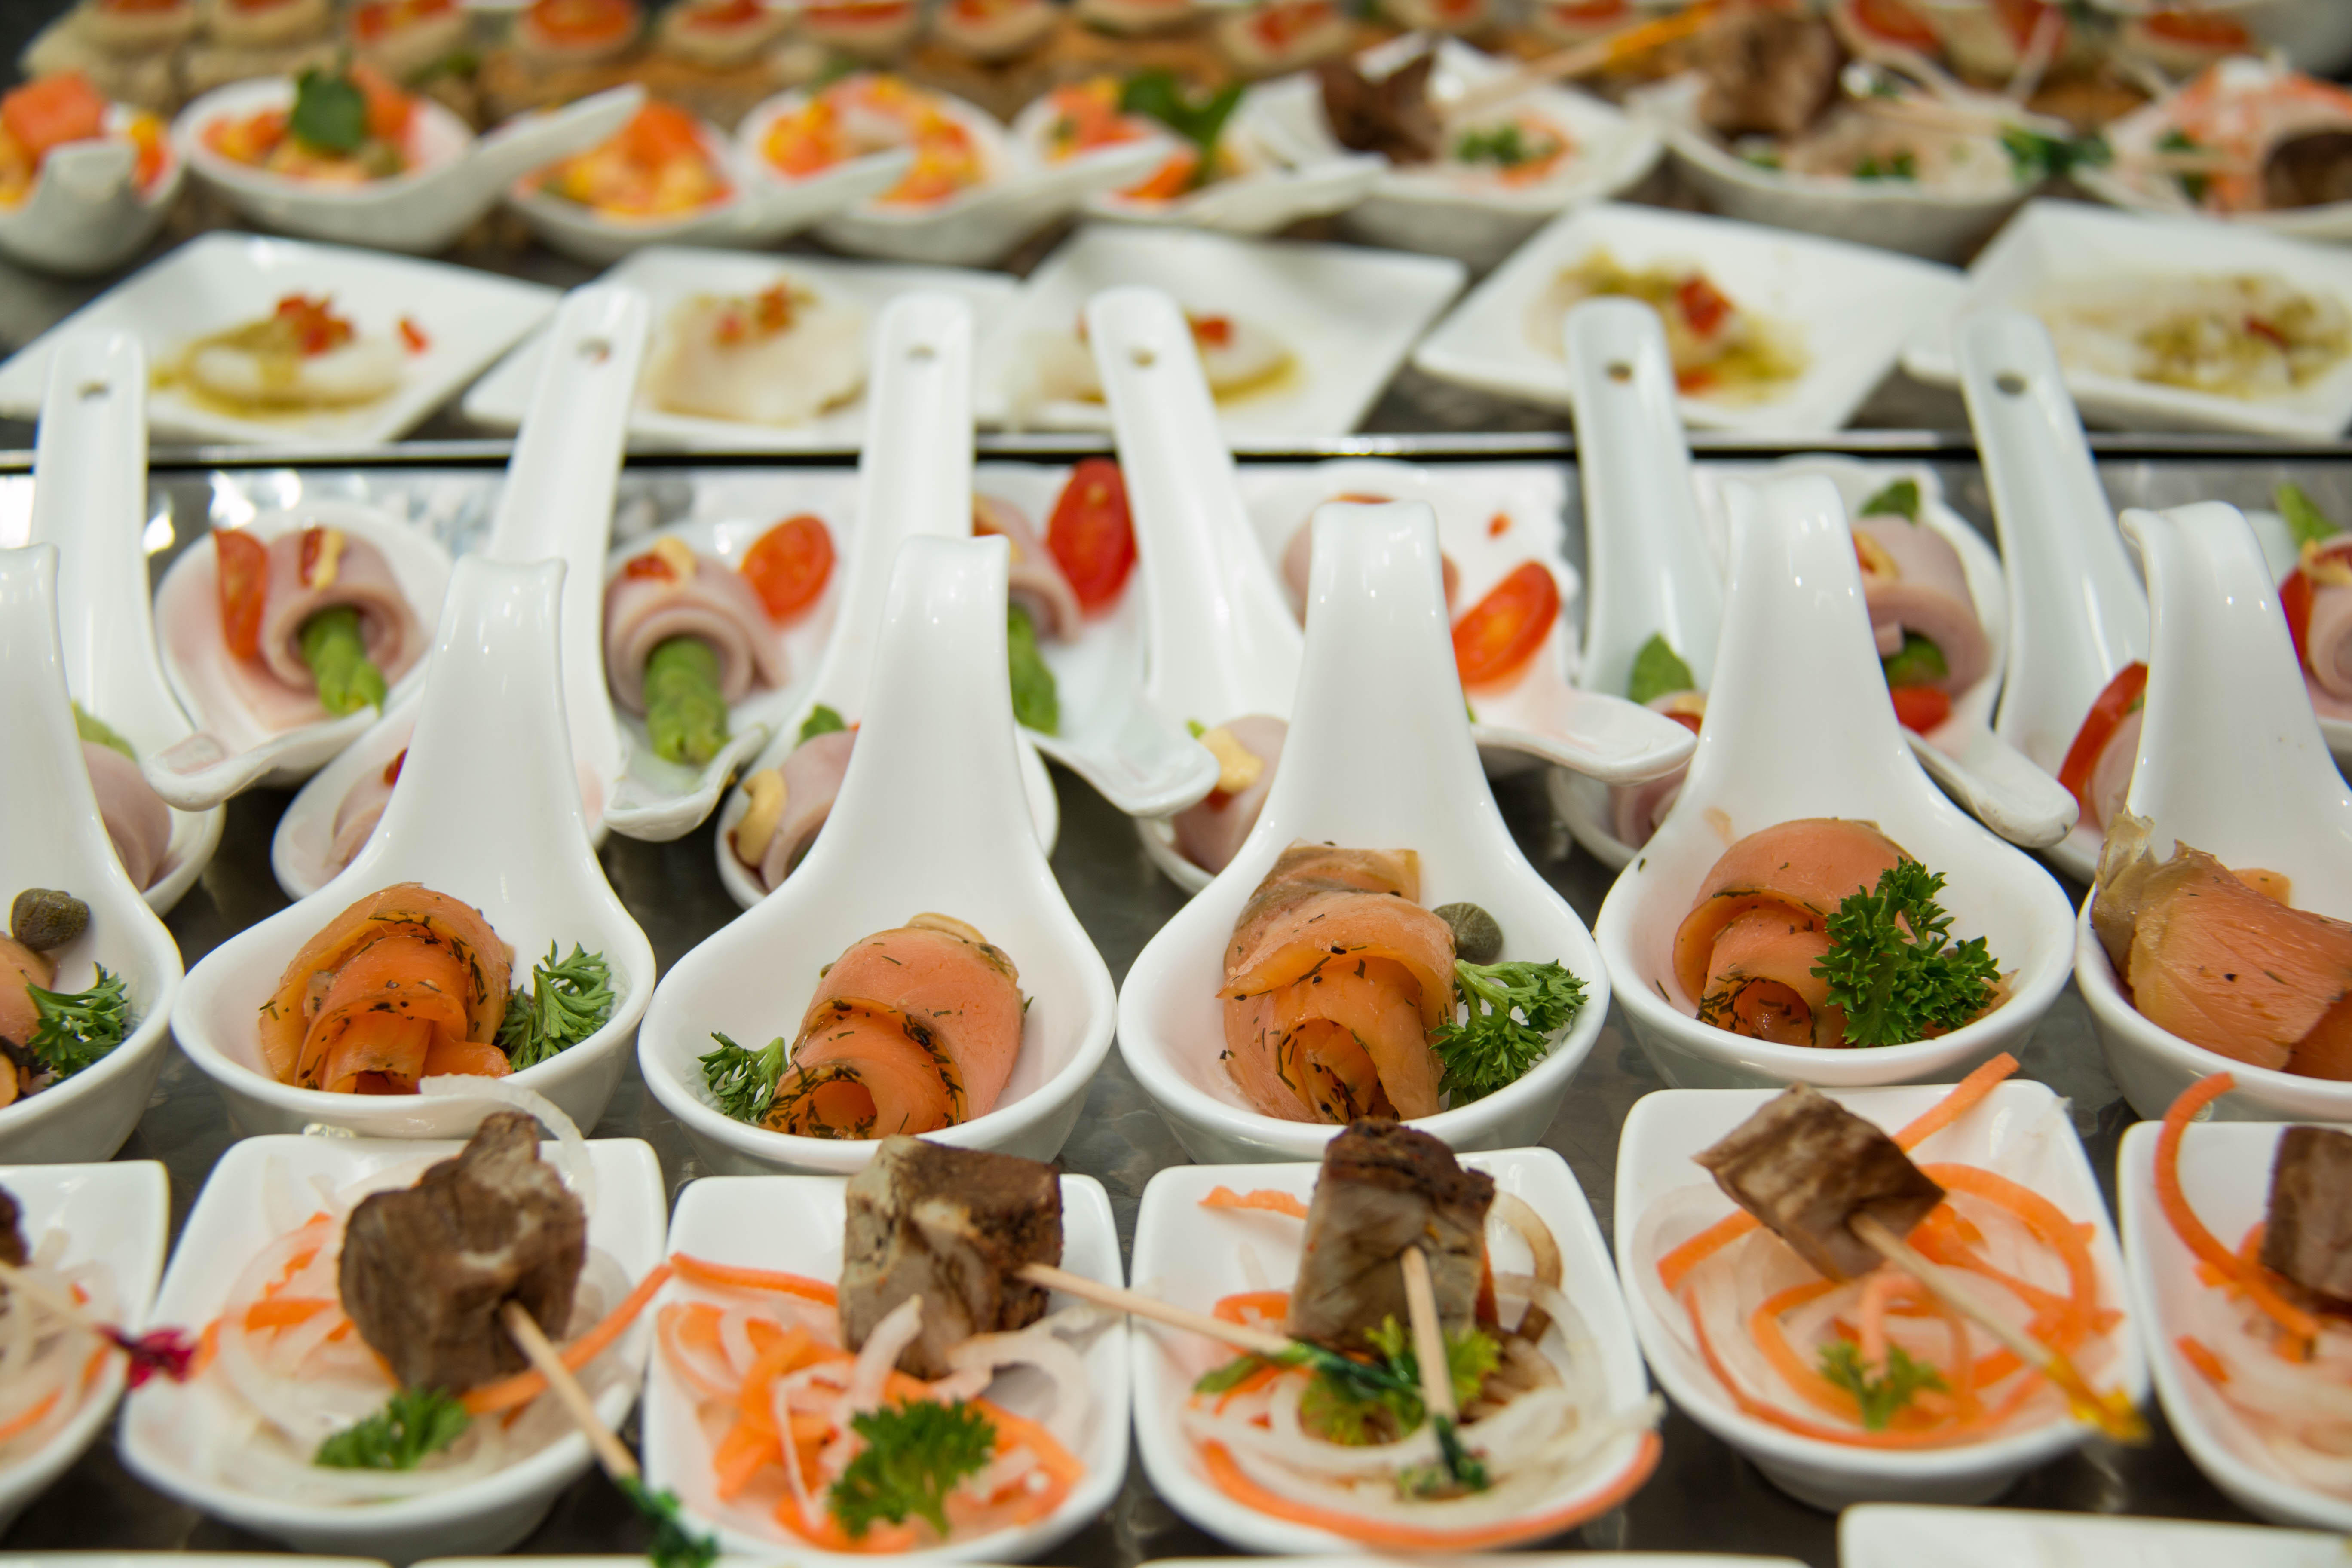 Vietnam restaurant corpus christi tx company profile for Canape caterers